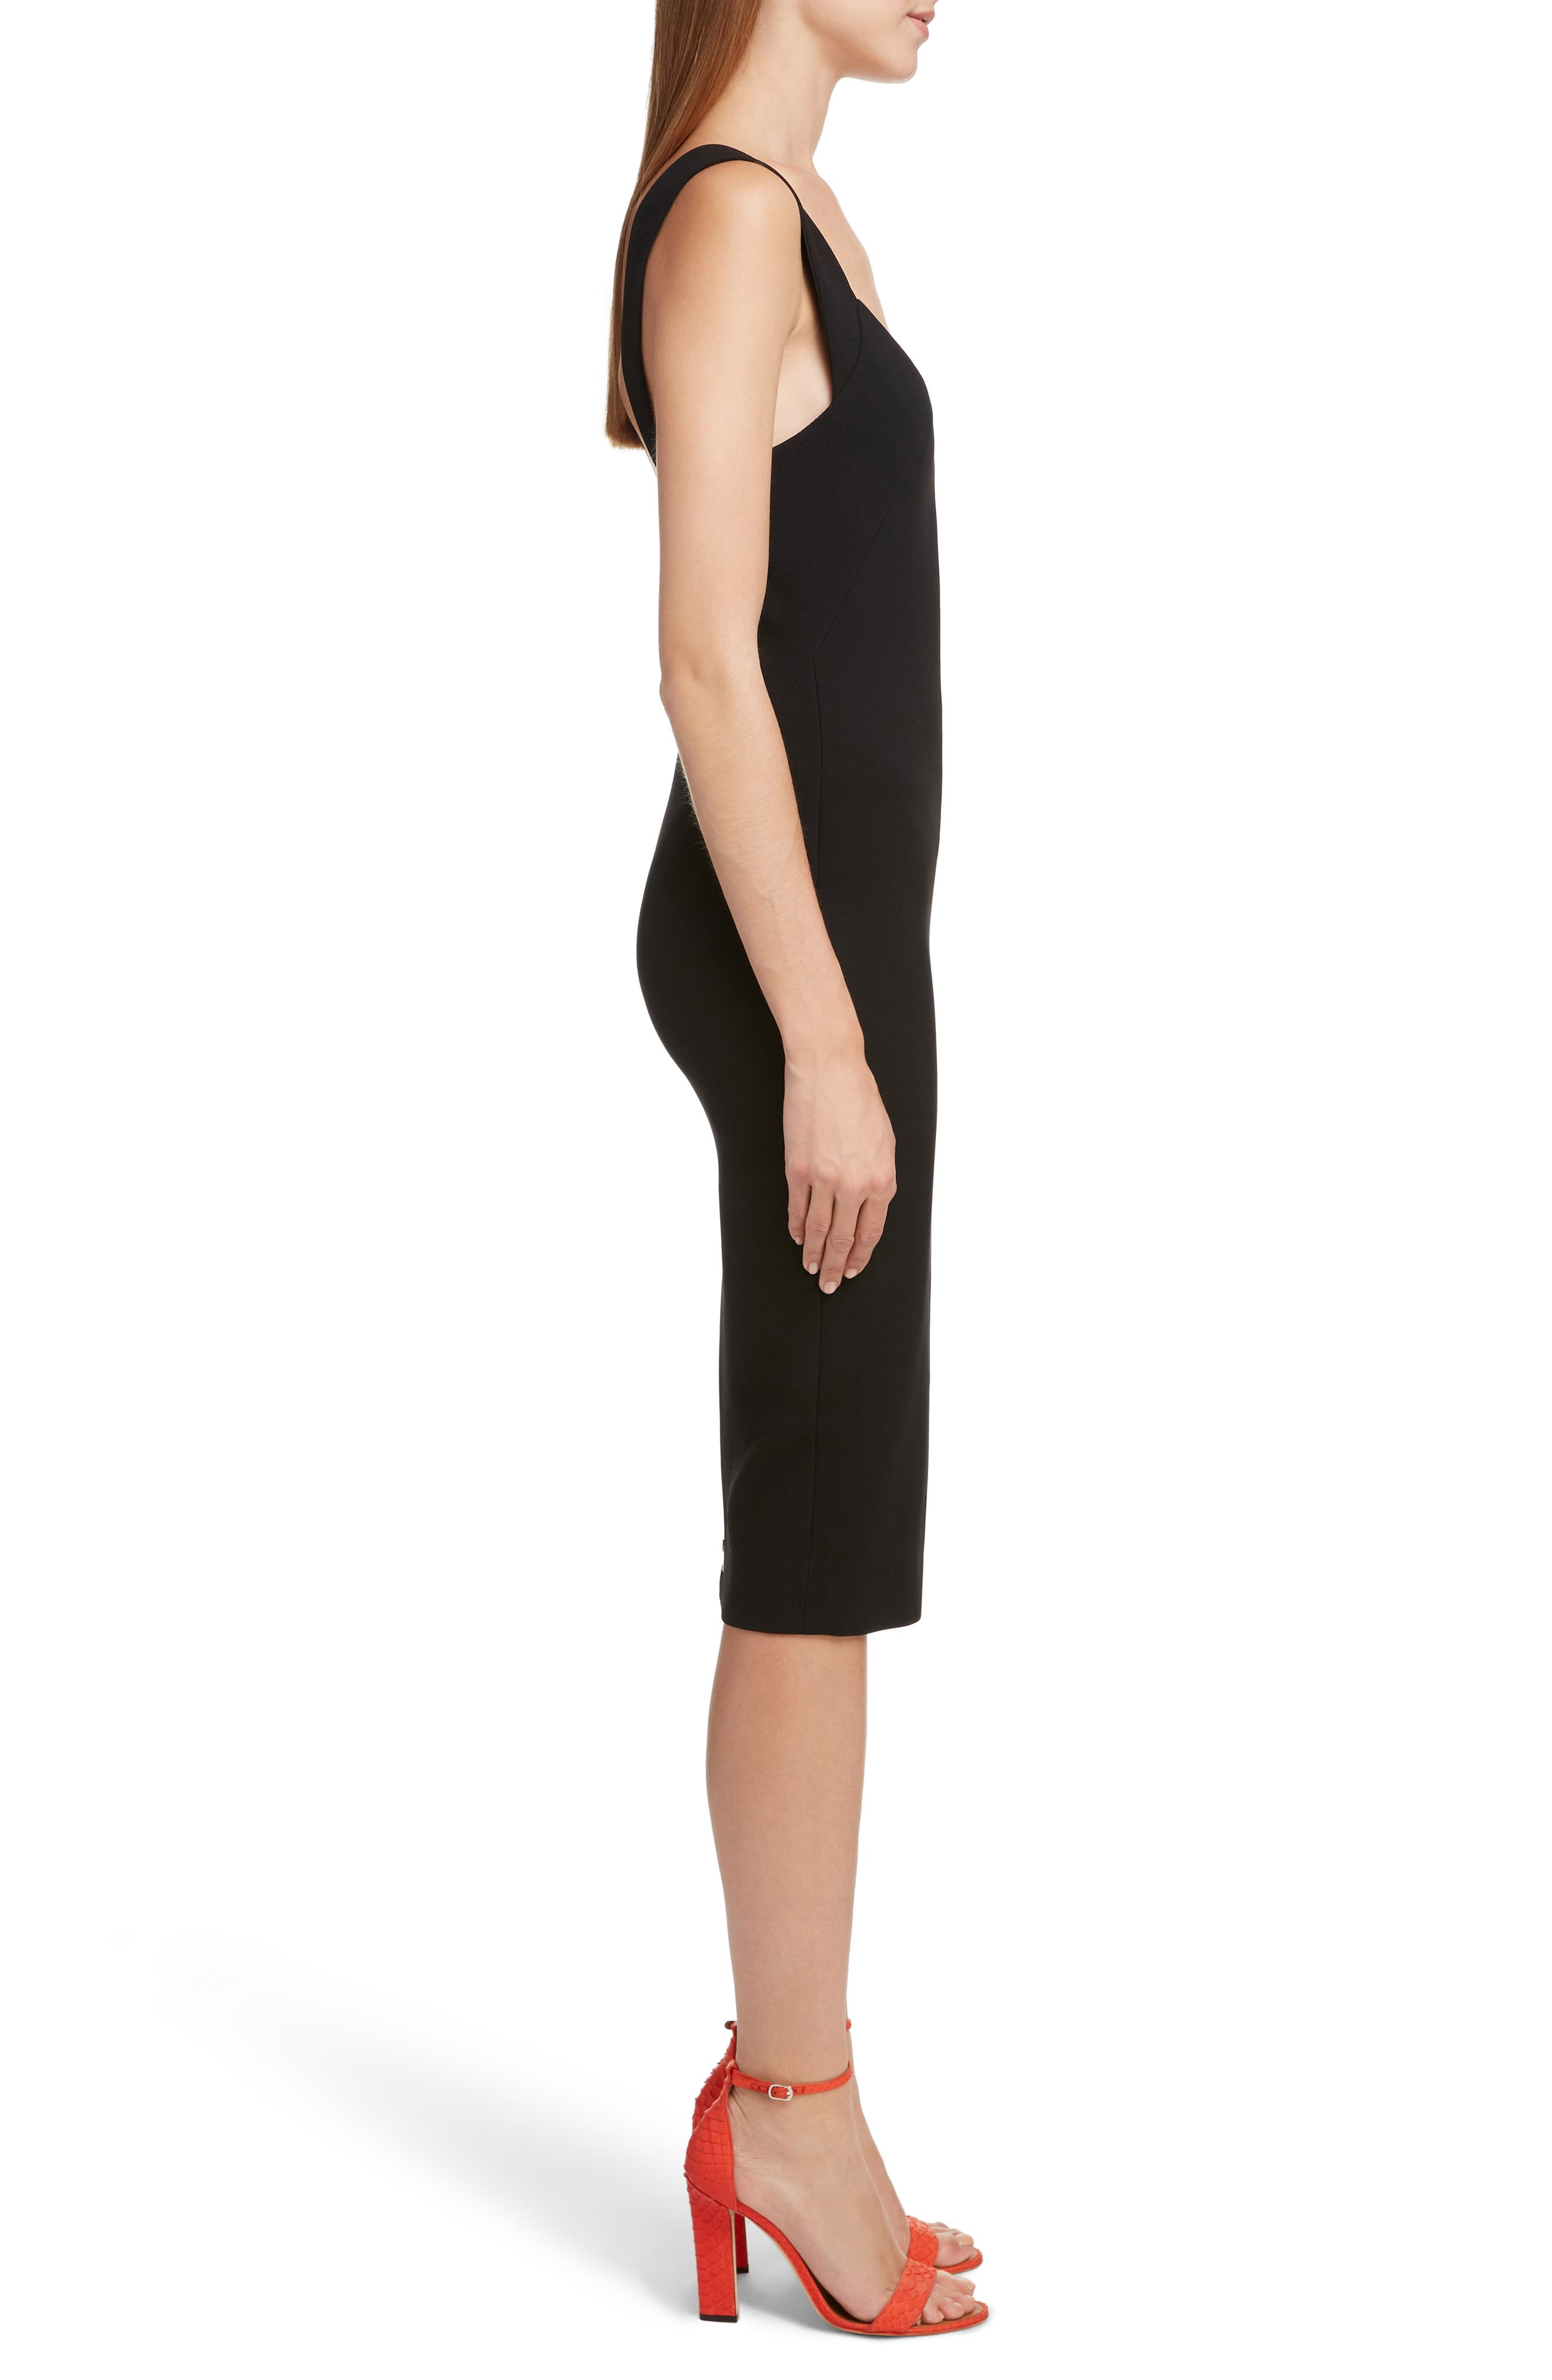 VICTORIA BECKHAM, Sweetheart Neck Body-Con Dress, Alternate thumbnail 3, color, BLACK